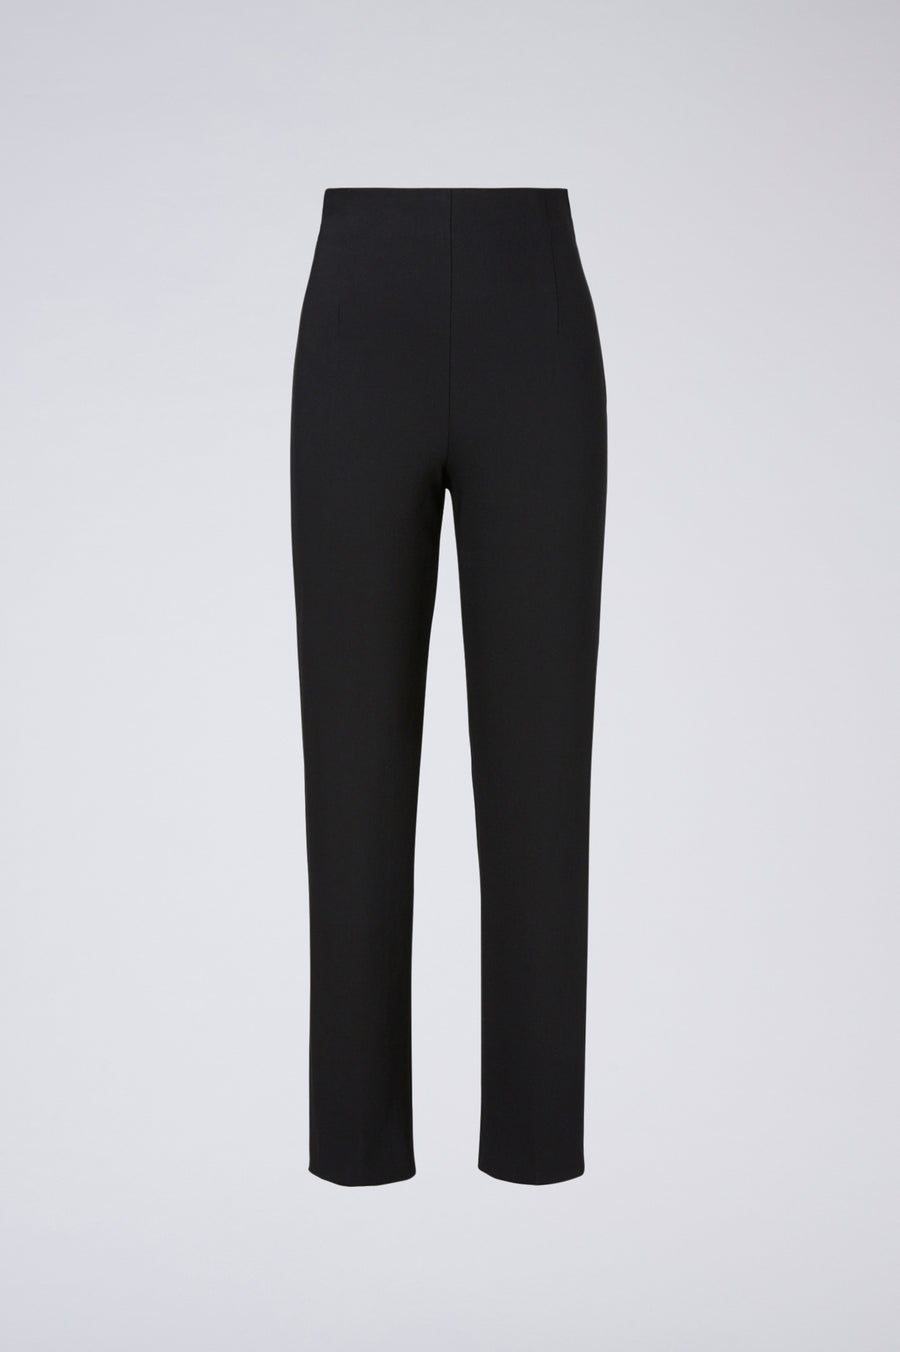 Designed as a timeless piece, our High Waist Slim Trouser is a core piece to your working wardrobe